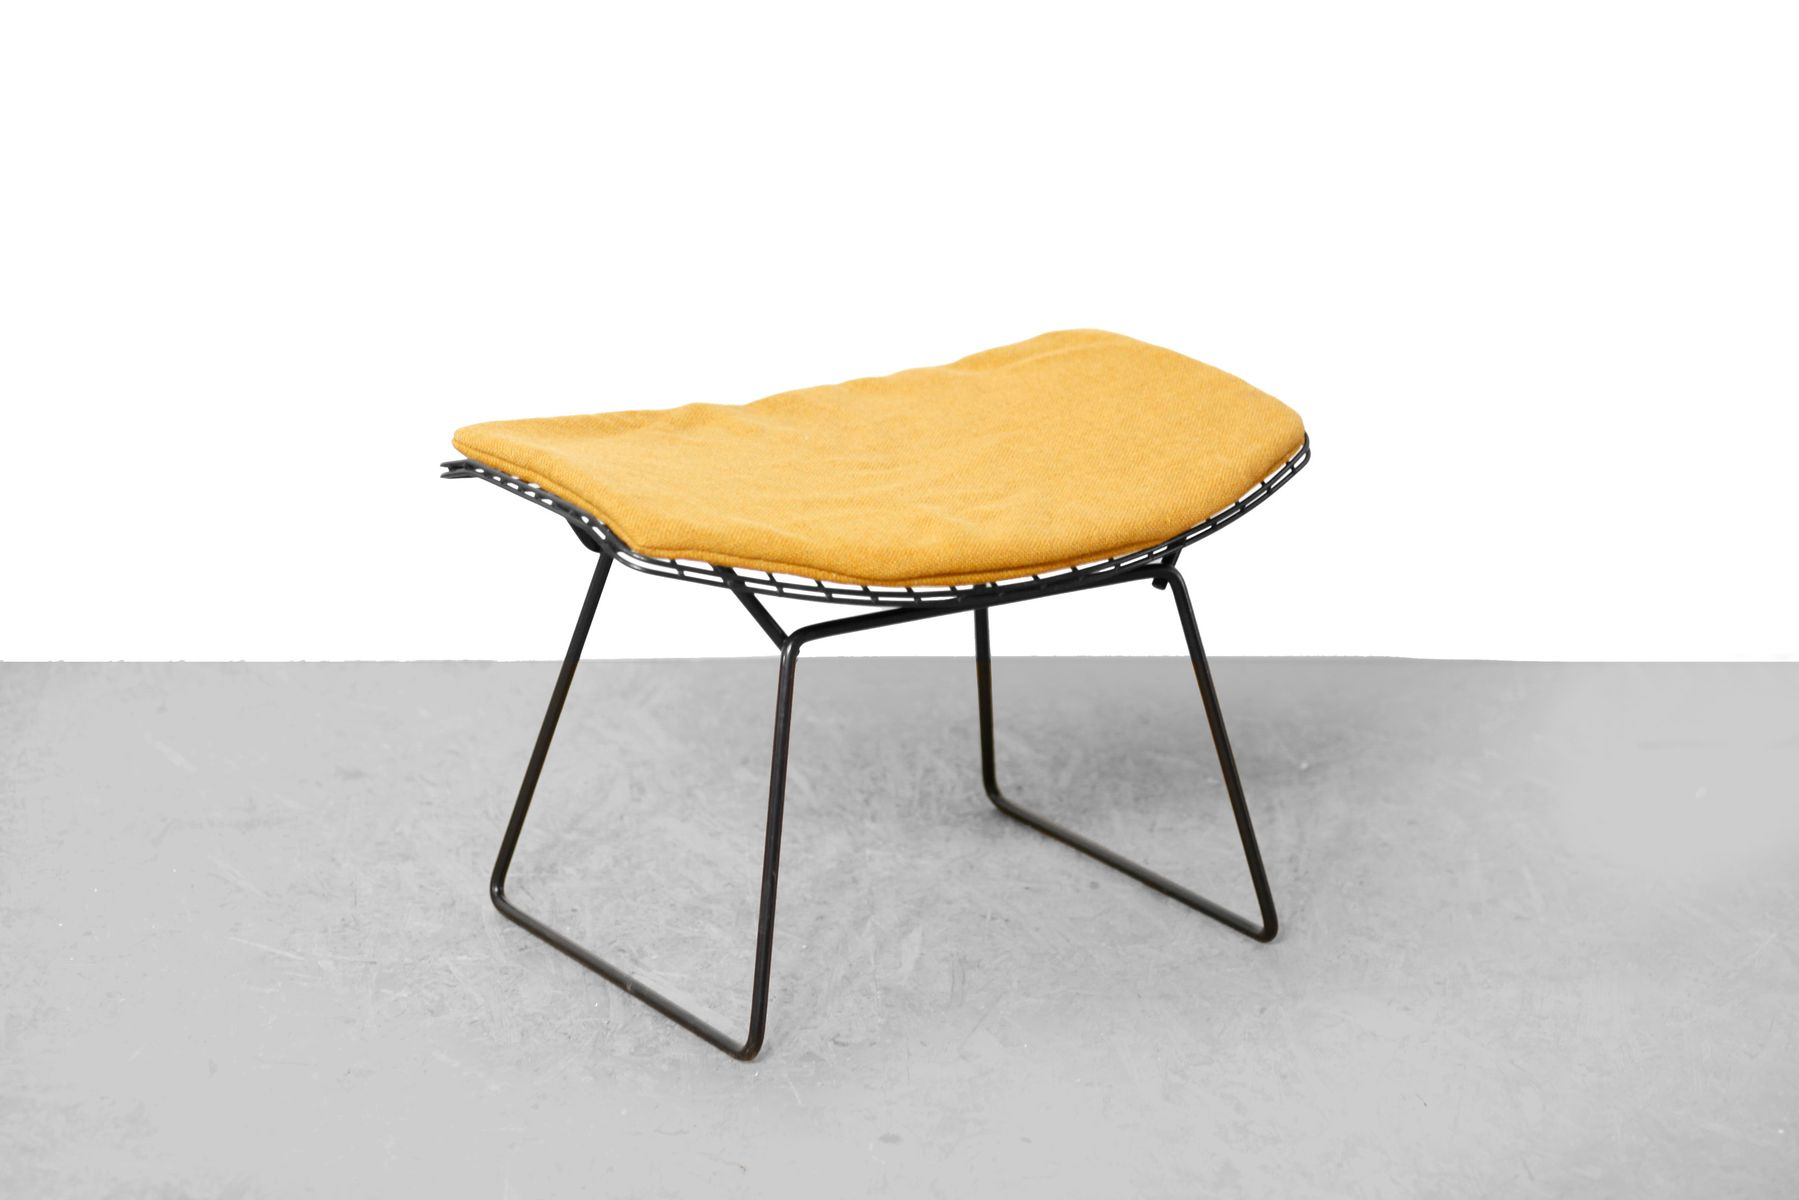 Model 424 diamond chair hocker by harry bertoia for knoll inc 1960s for sale at pamono - Knoll inc chairs ...